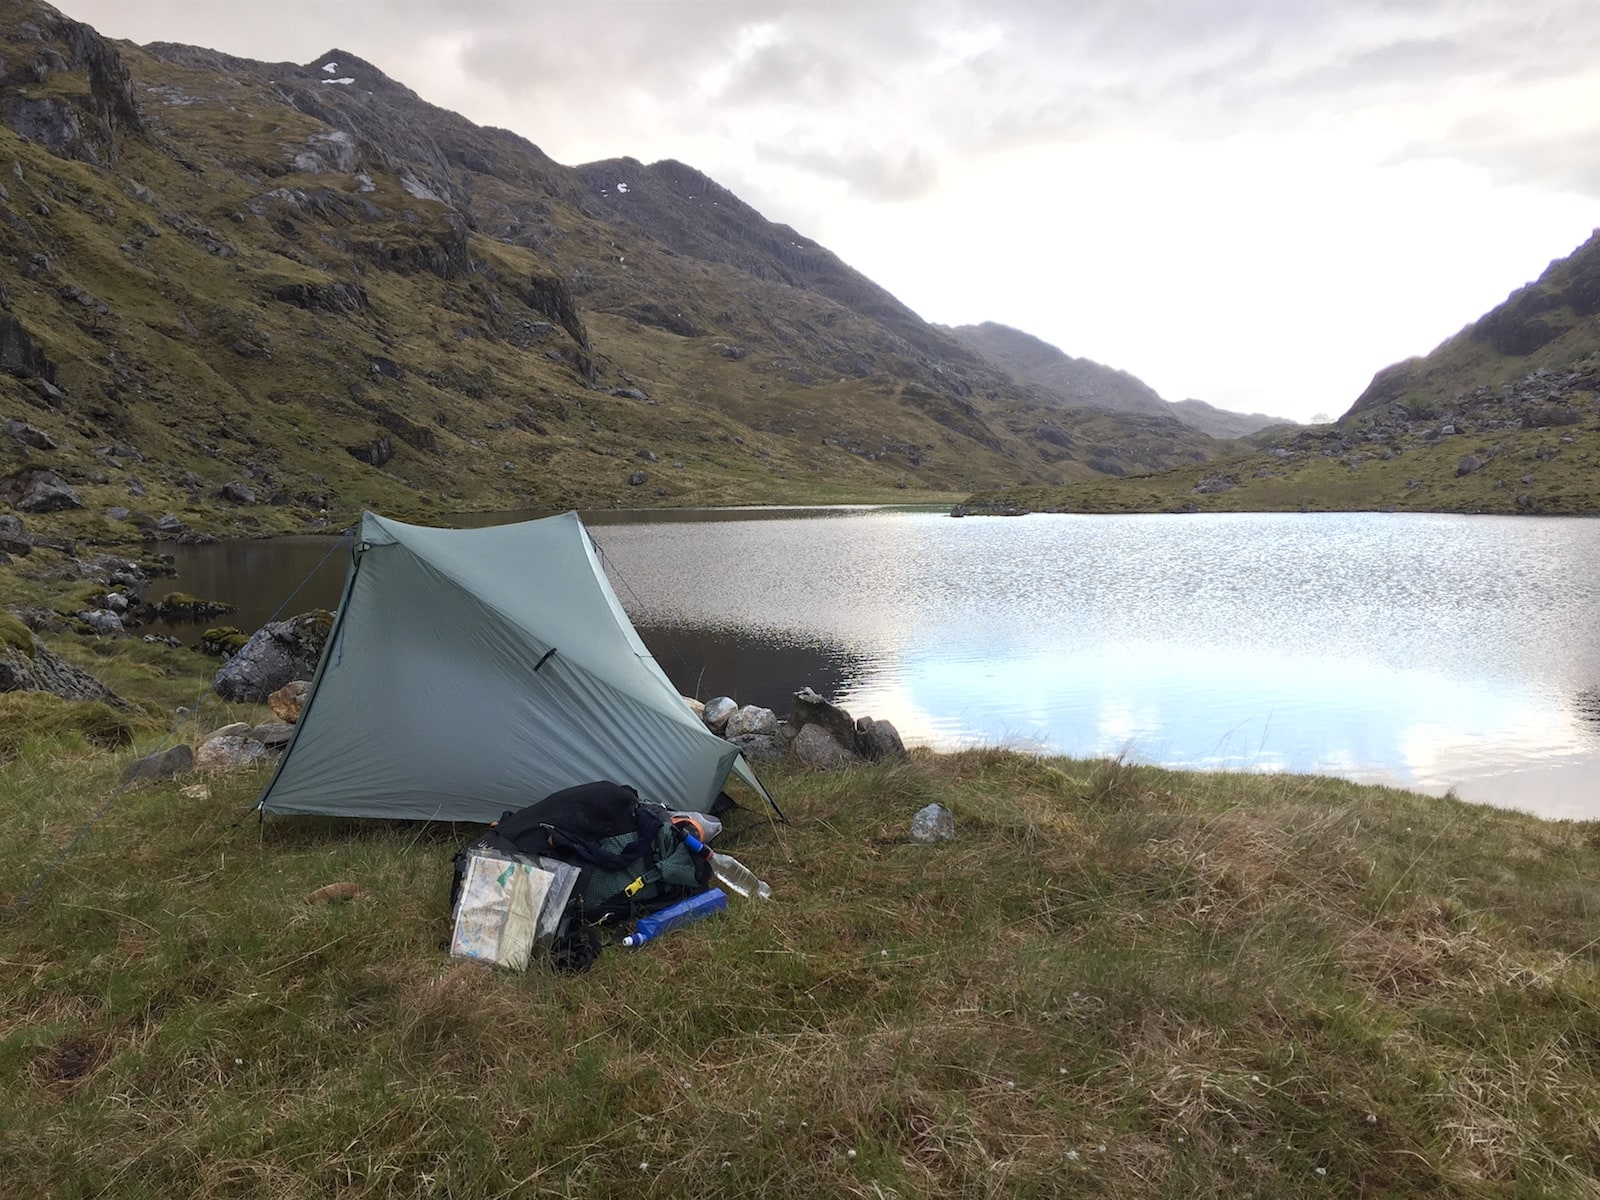 Tarptent Notch on the Cape Wrath Trail in 2015